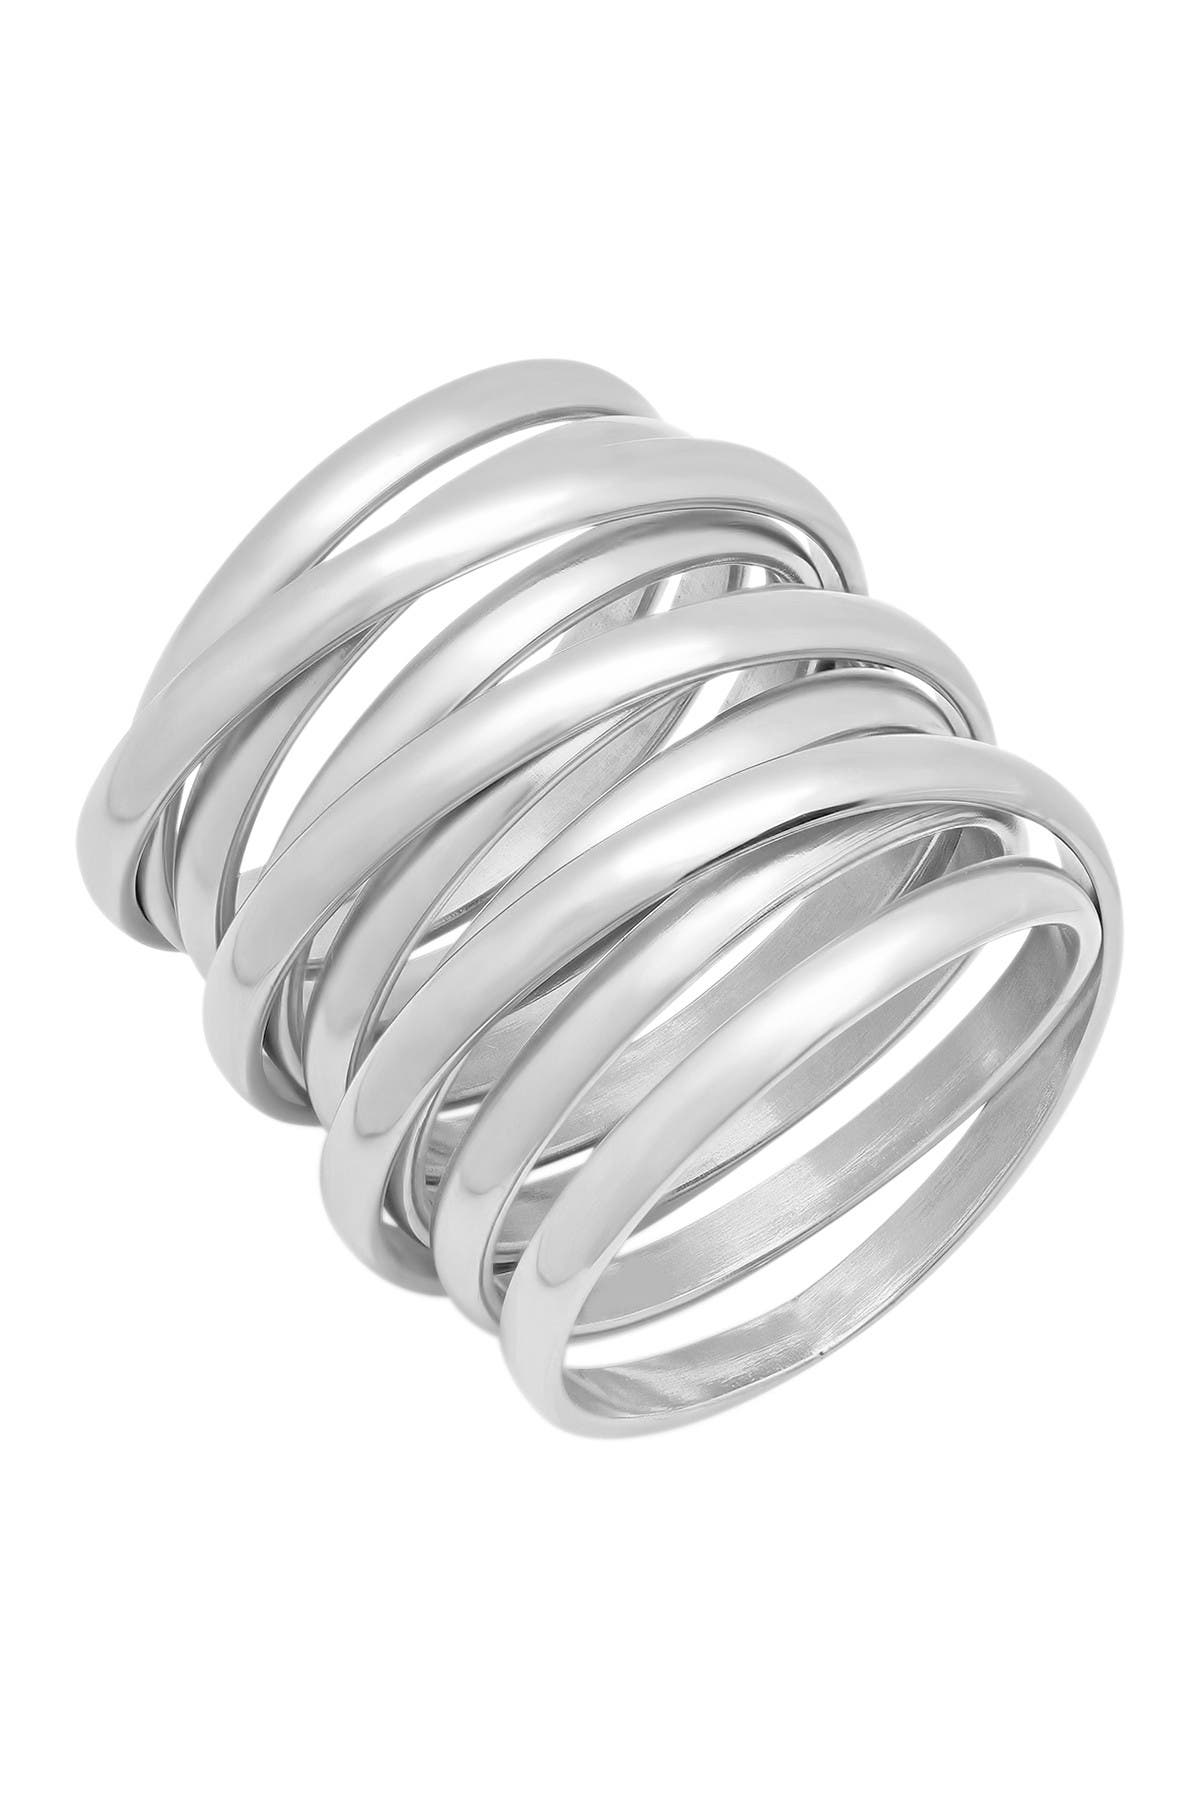 Image of HMY Jewelry Stainless Steel Multiwrap Ring